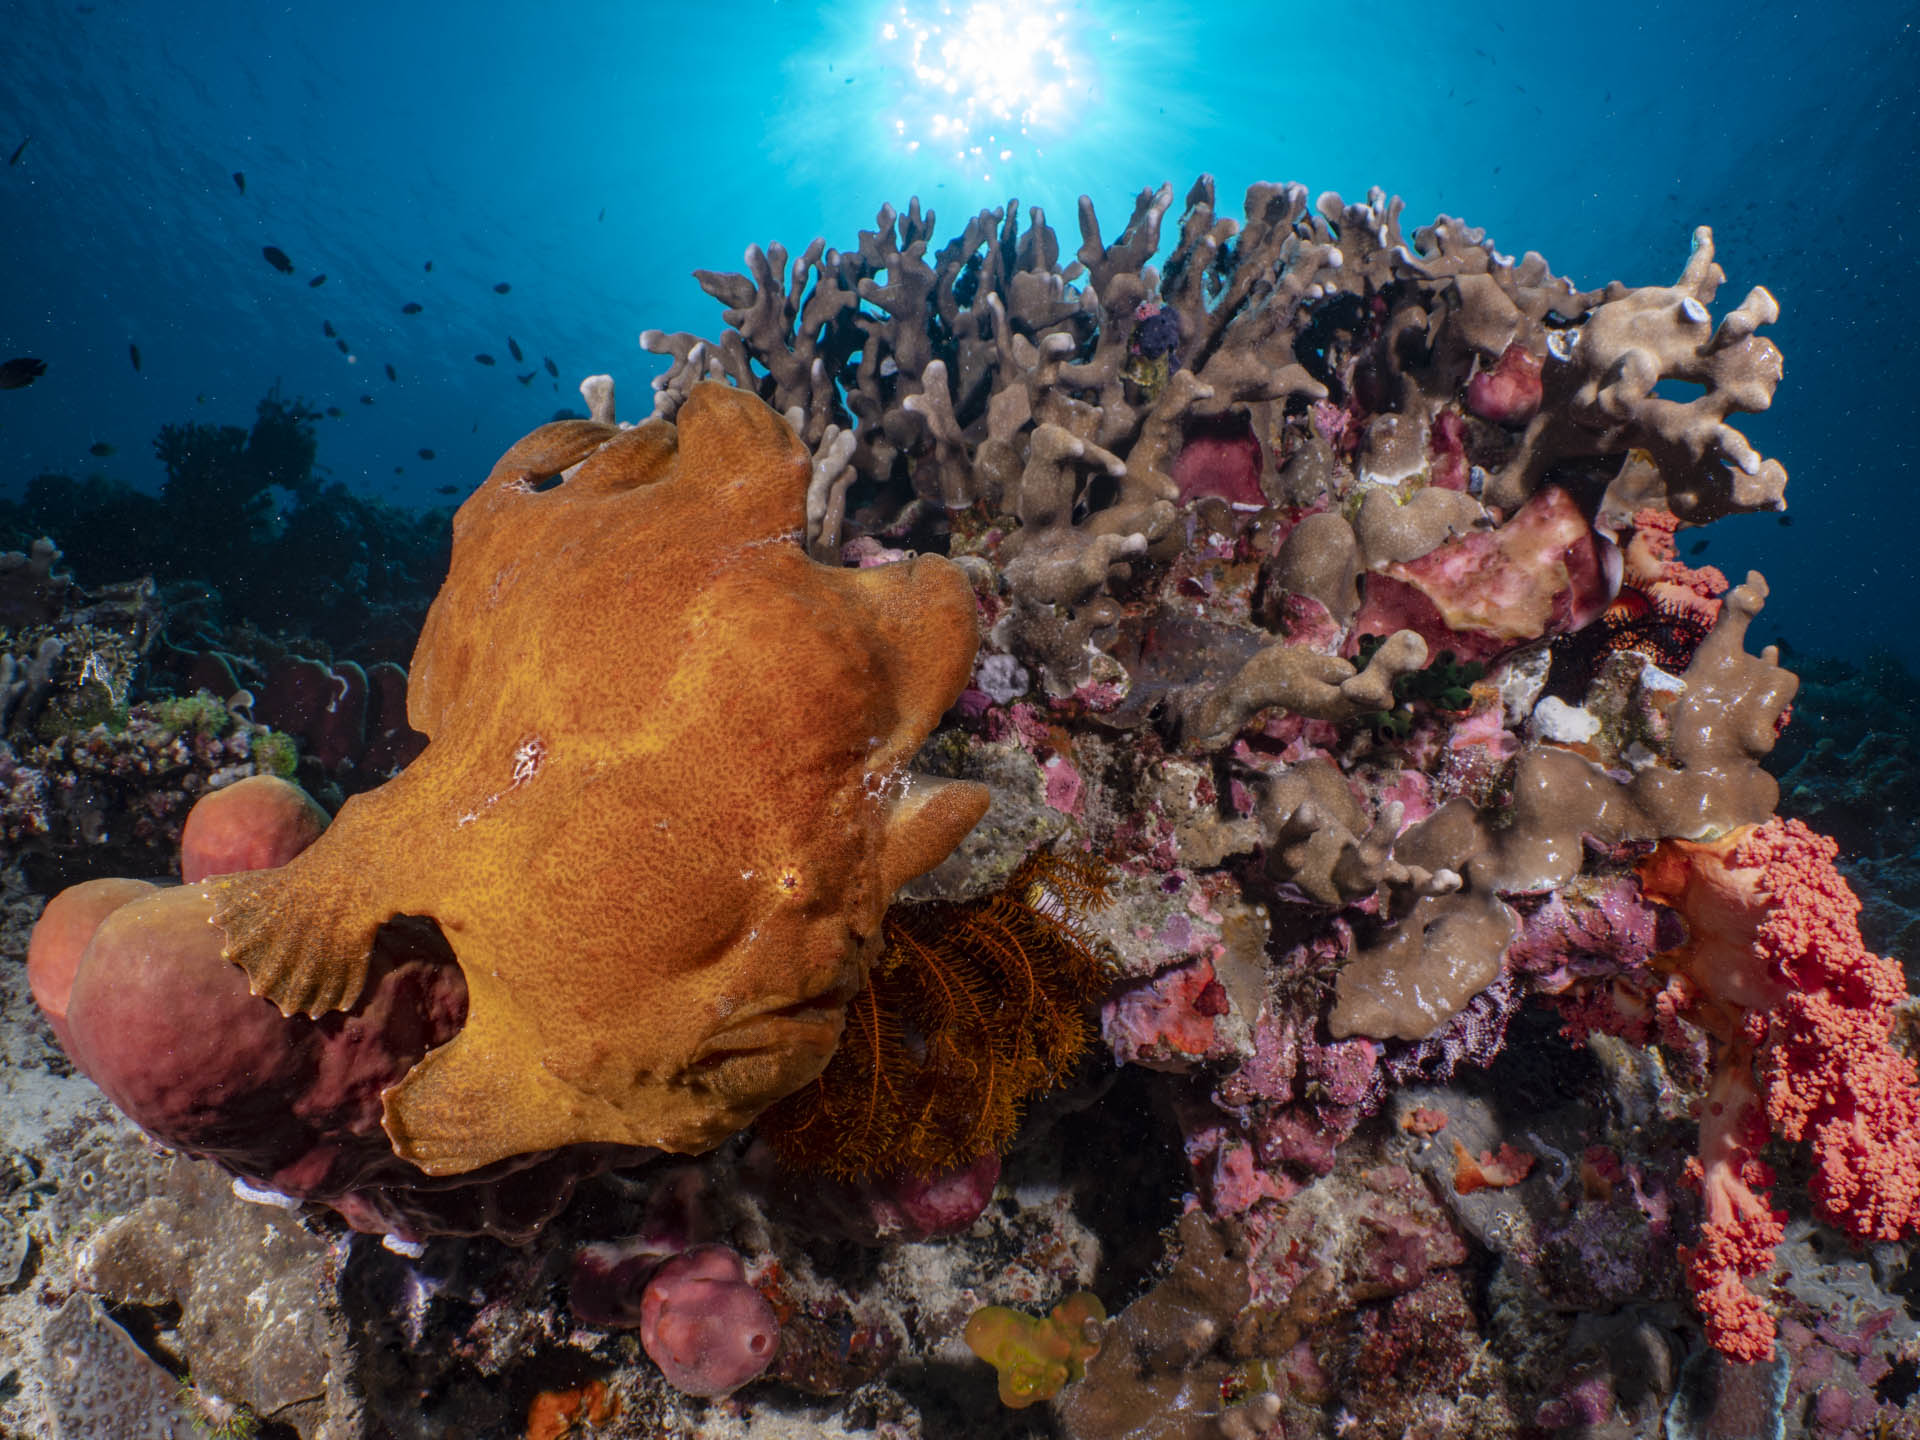 Giant orange frog fish with sun behind